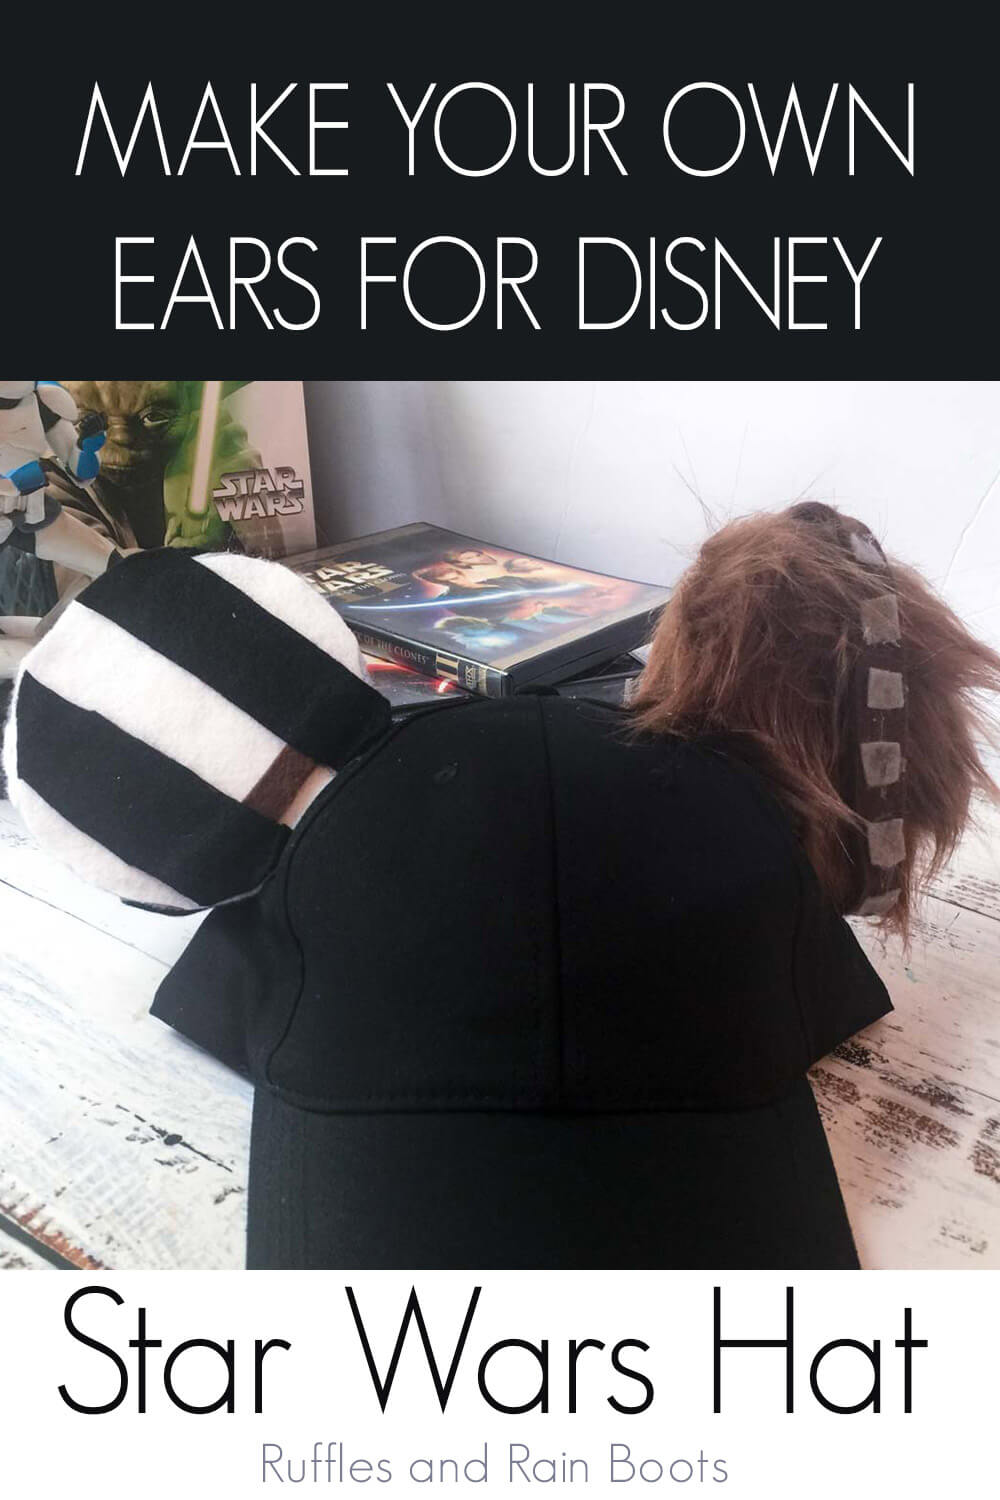 diy mickey ears for star wars galaxy edge with text which reads make your own ears for disney star wars hat